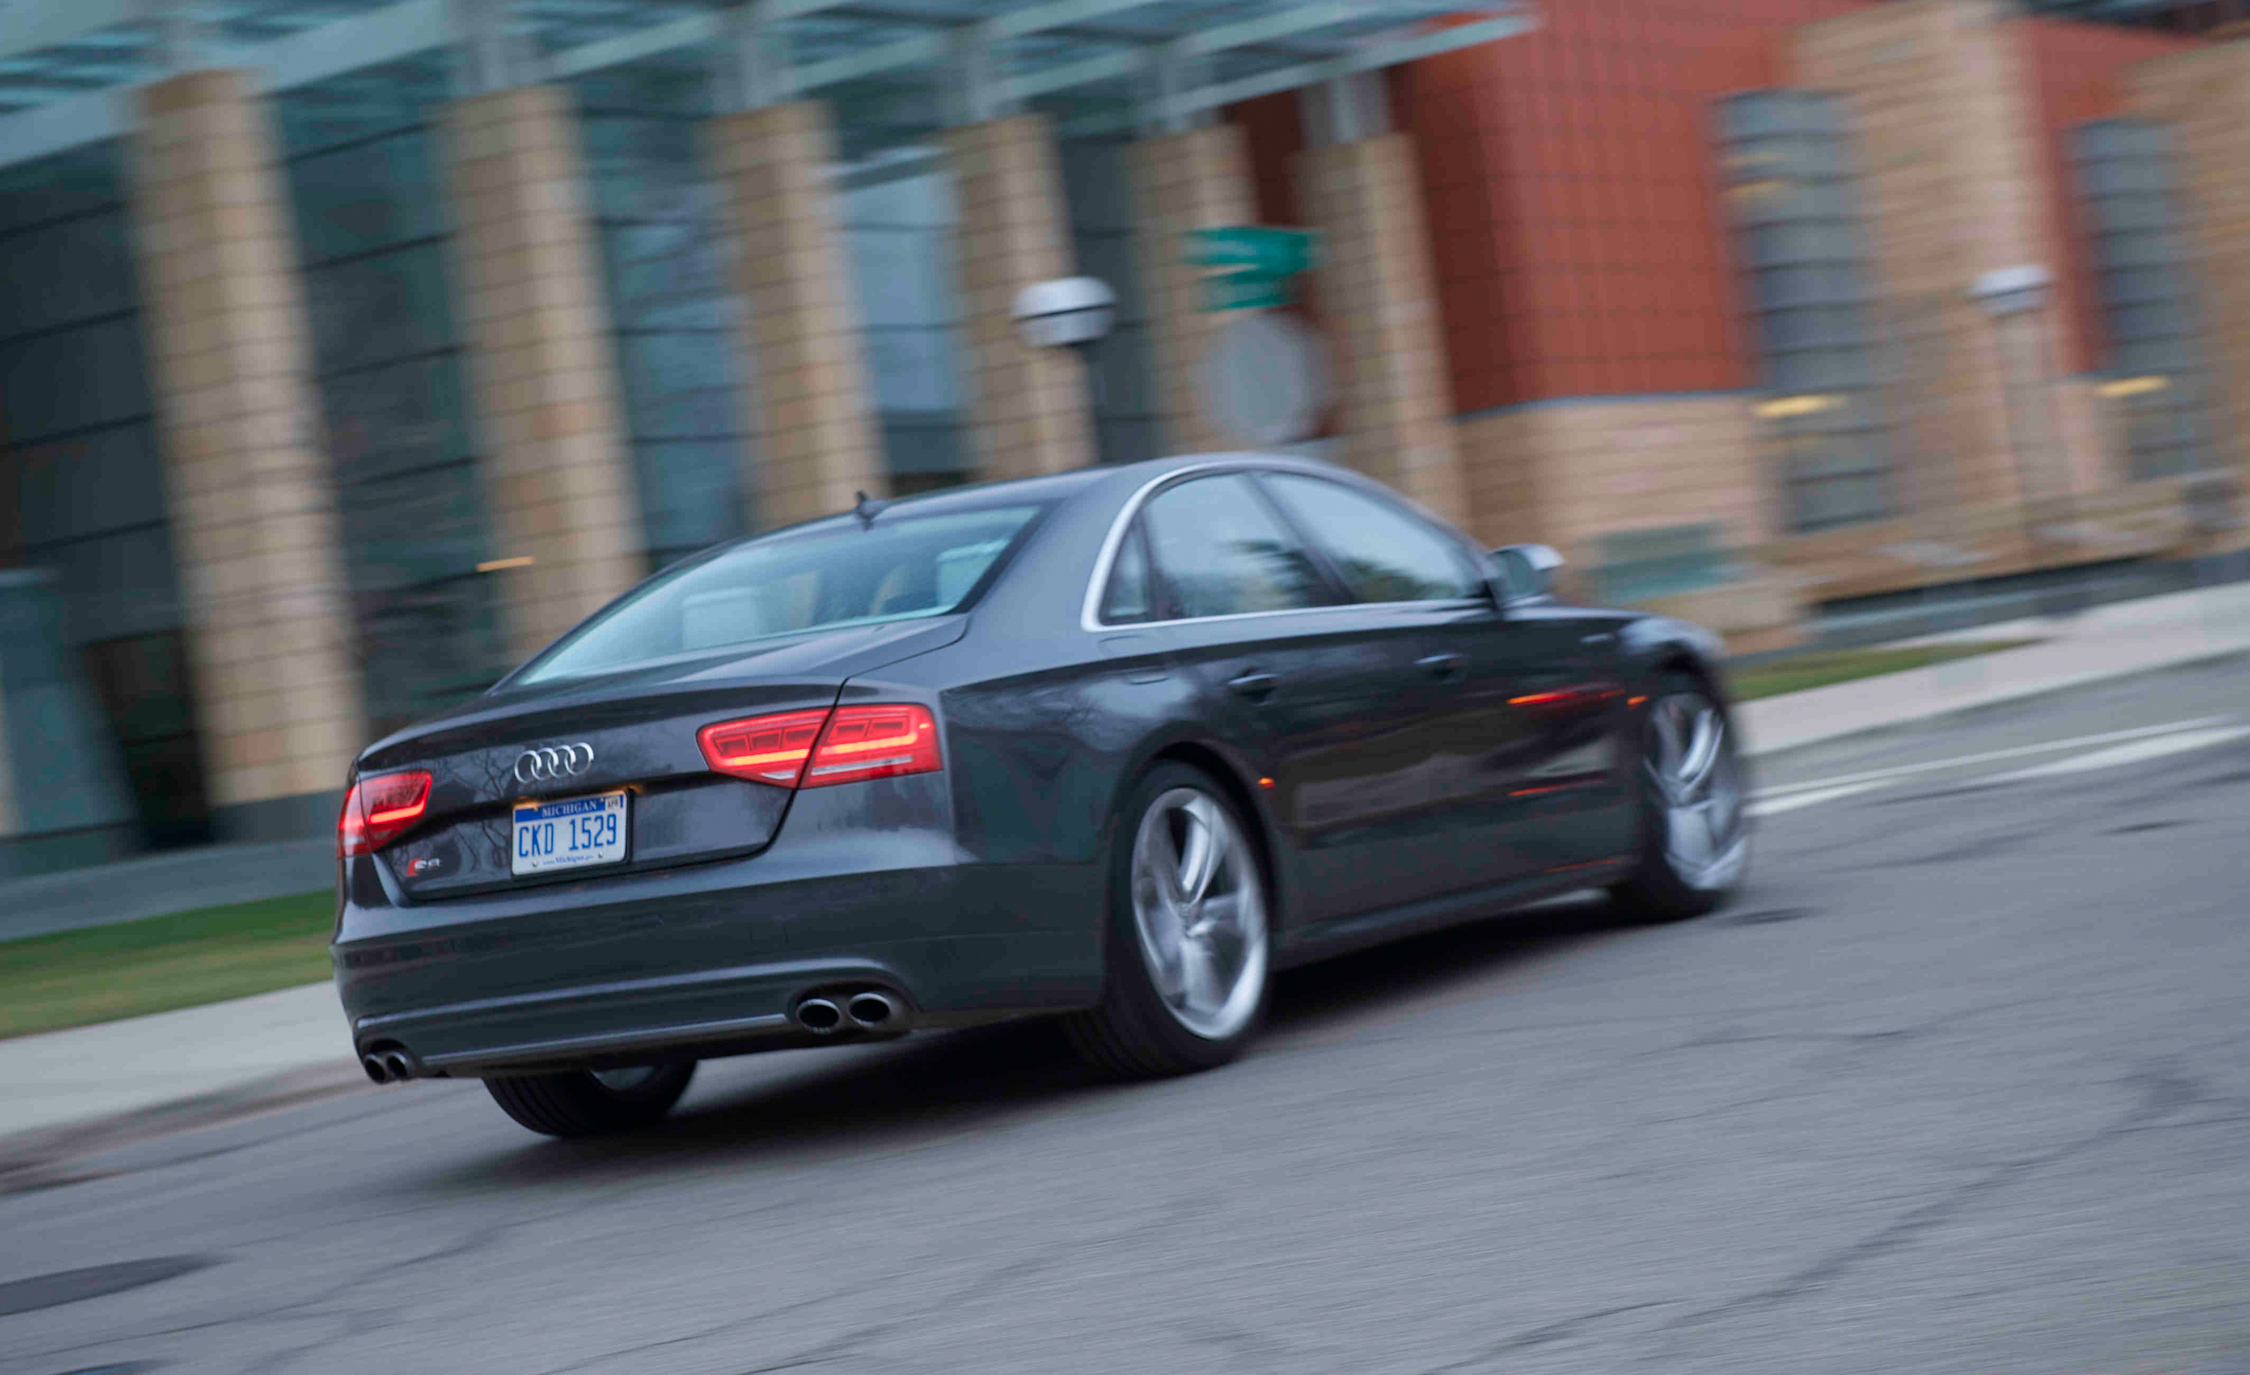 2013 Audi S8 Test Drive Side And Rear View (View 8 of 25)